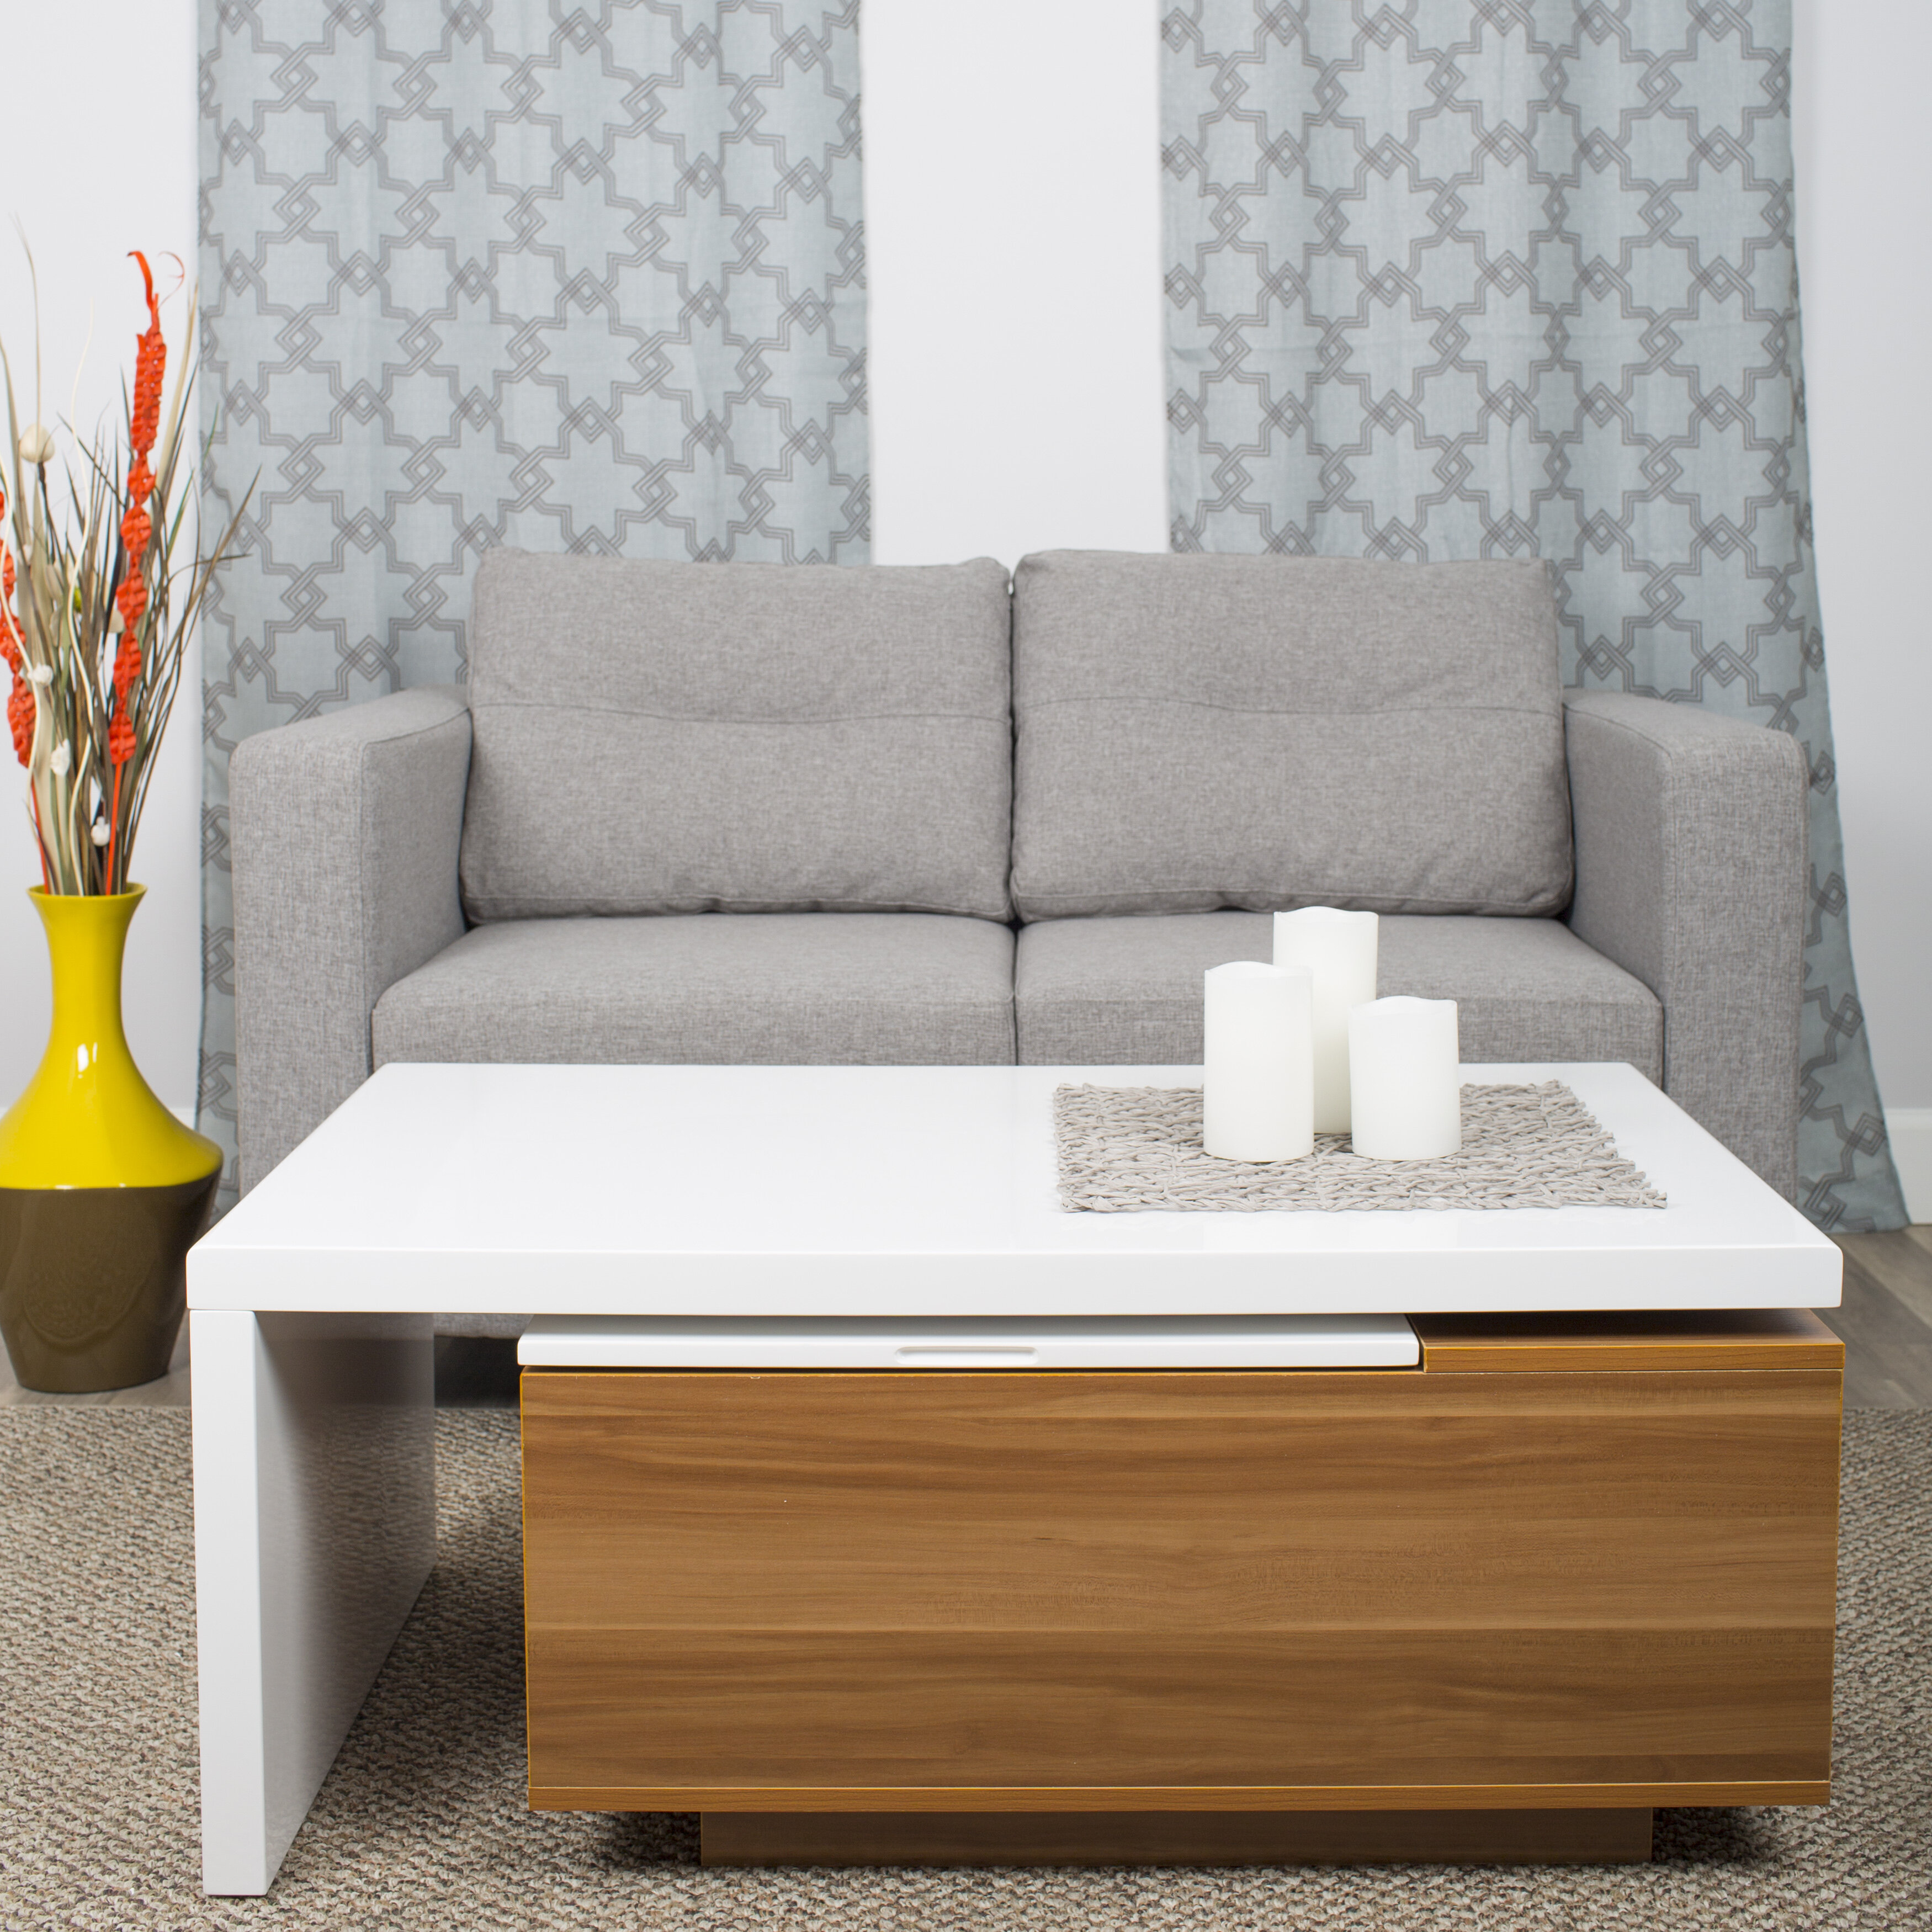 Wayfair   MIX Lift Top Coffee Table With Storage